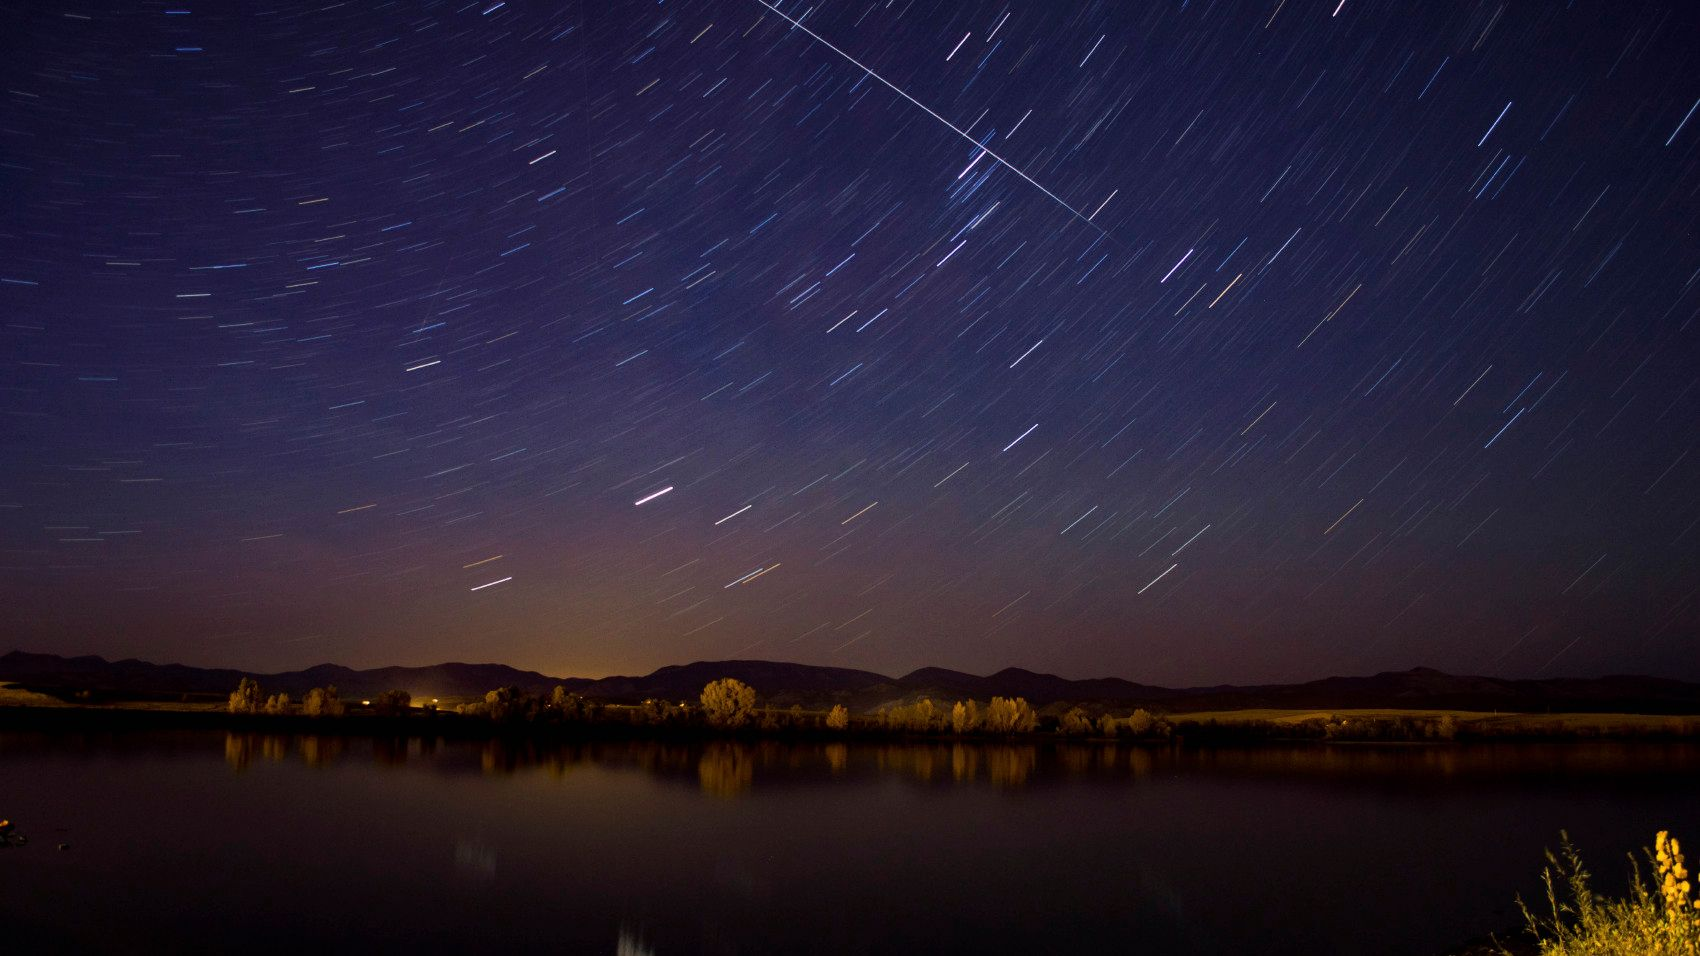 See the space station AND space shuttle tonight